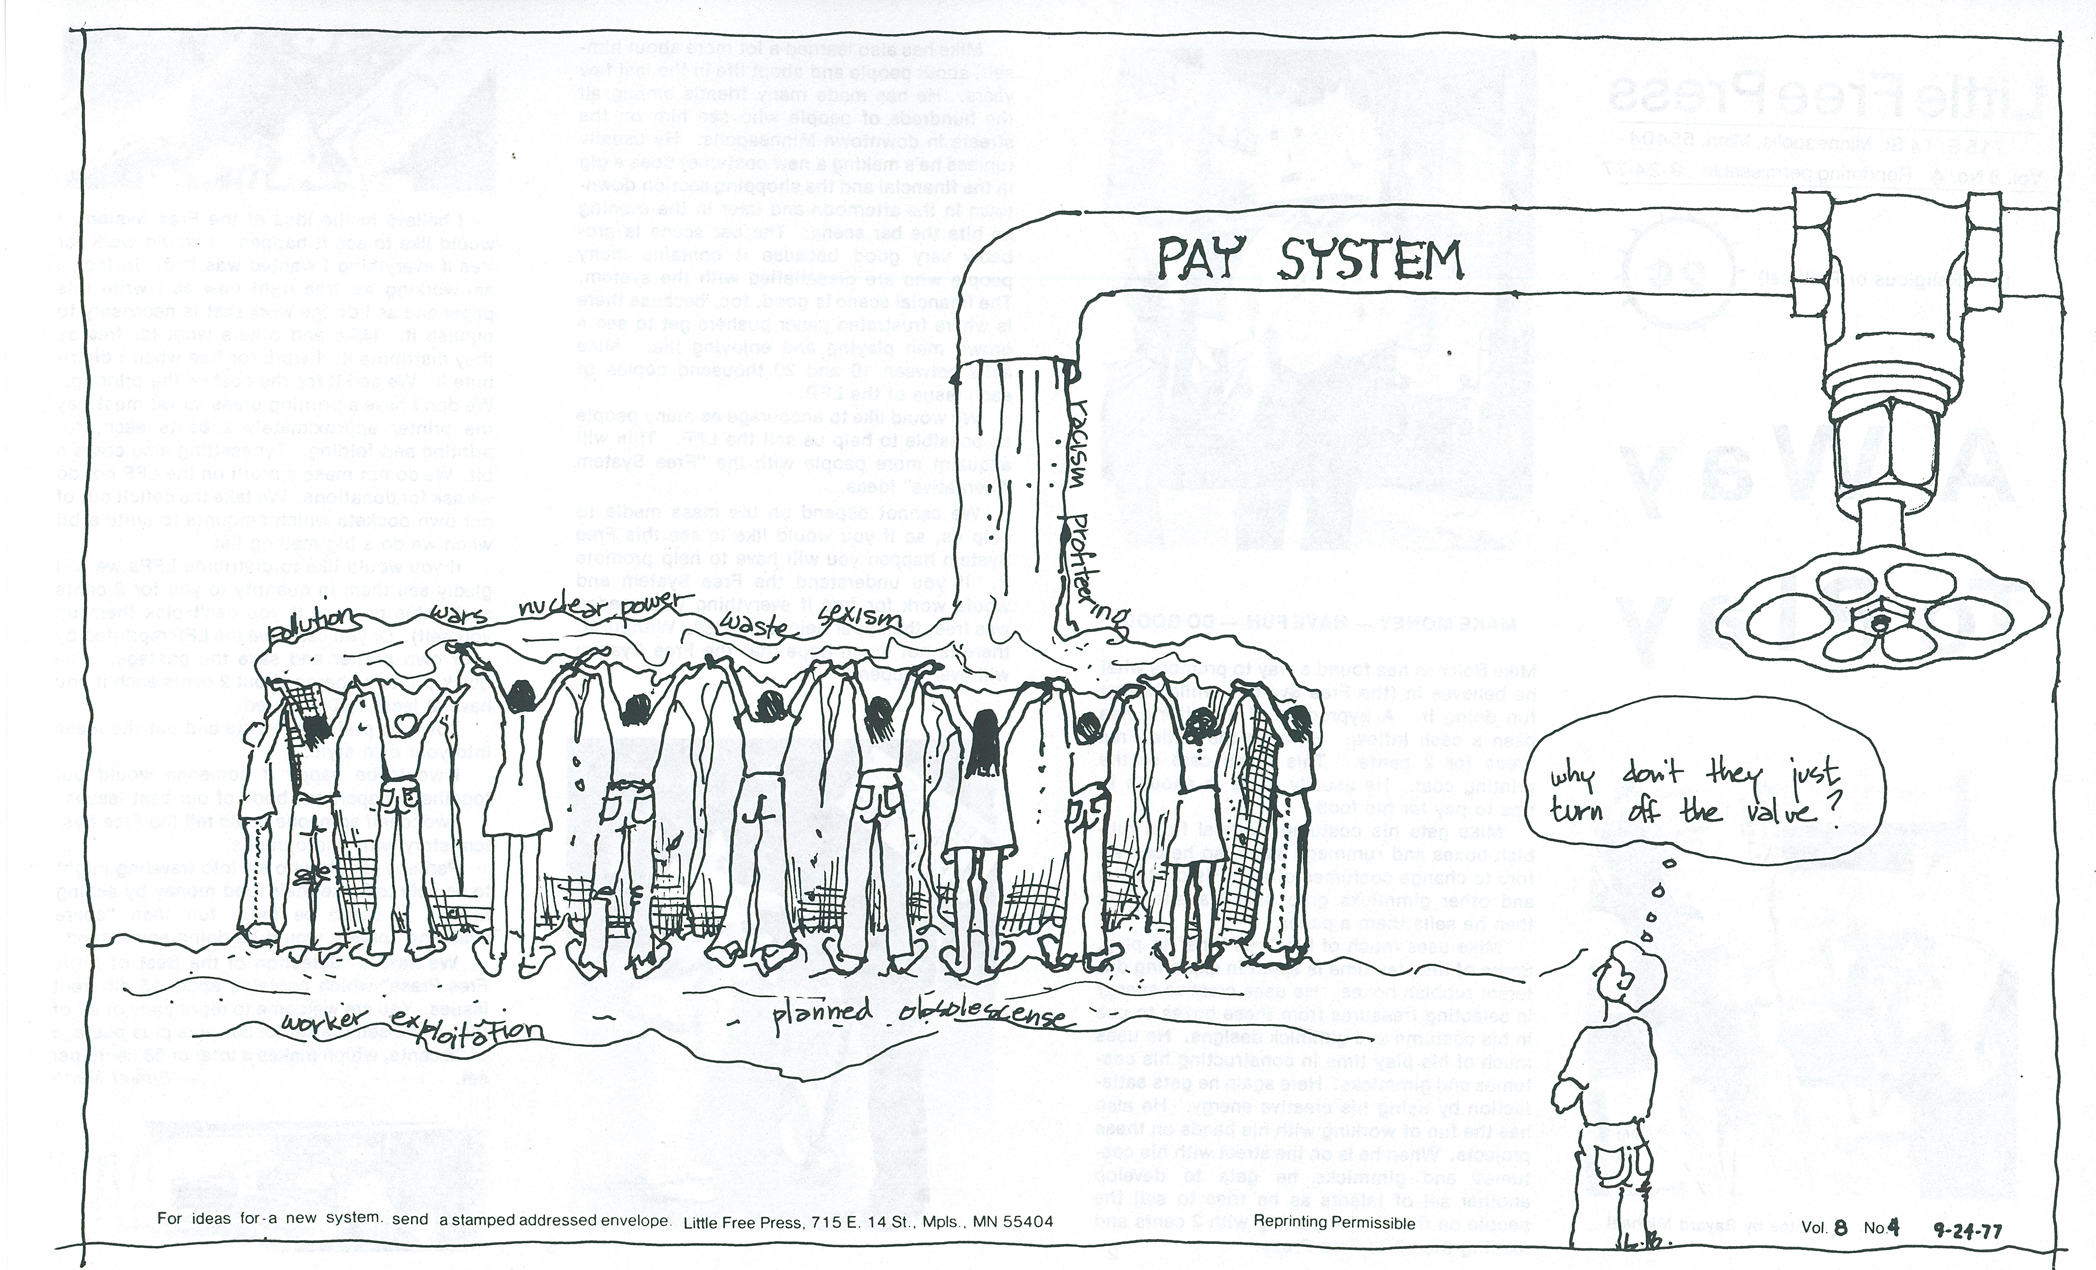 An illustration of Ernest Mann's Priceless Economic System. If workers stopped working for pay (i.e. turned off the faucet), society would be better off. Illustration by Carol Gatts for the Little Free Press, Vol. 8, No. 4, Sept. 24, 1977, by Ernest Mann.